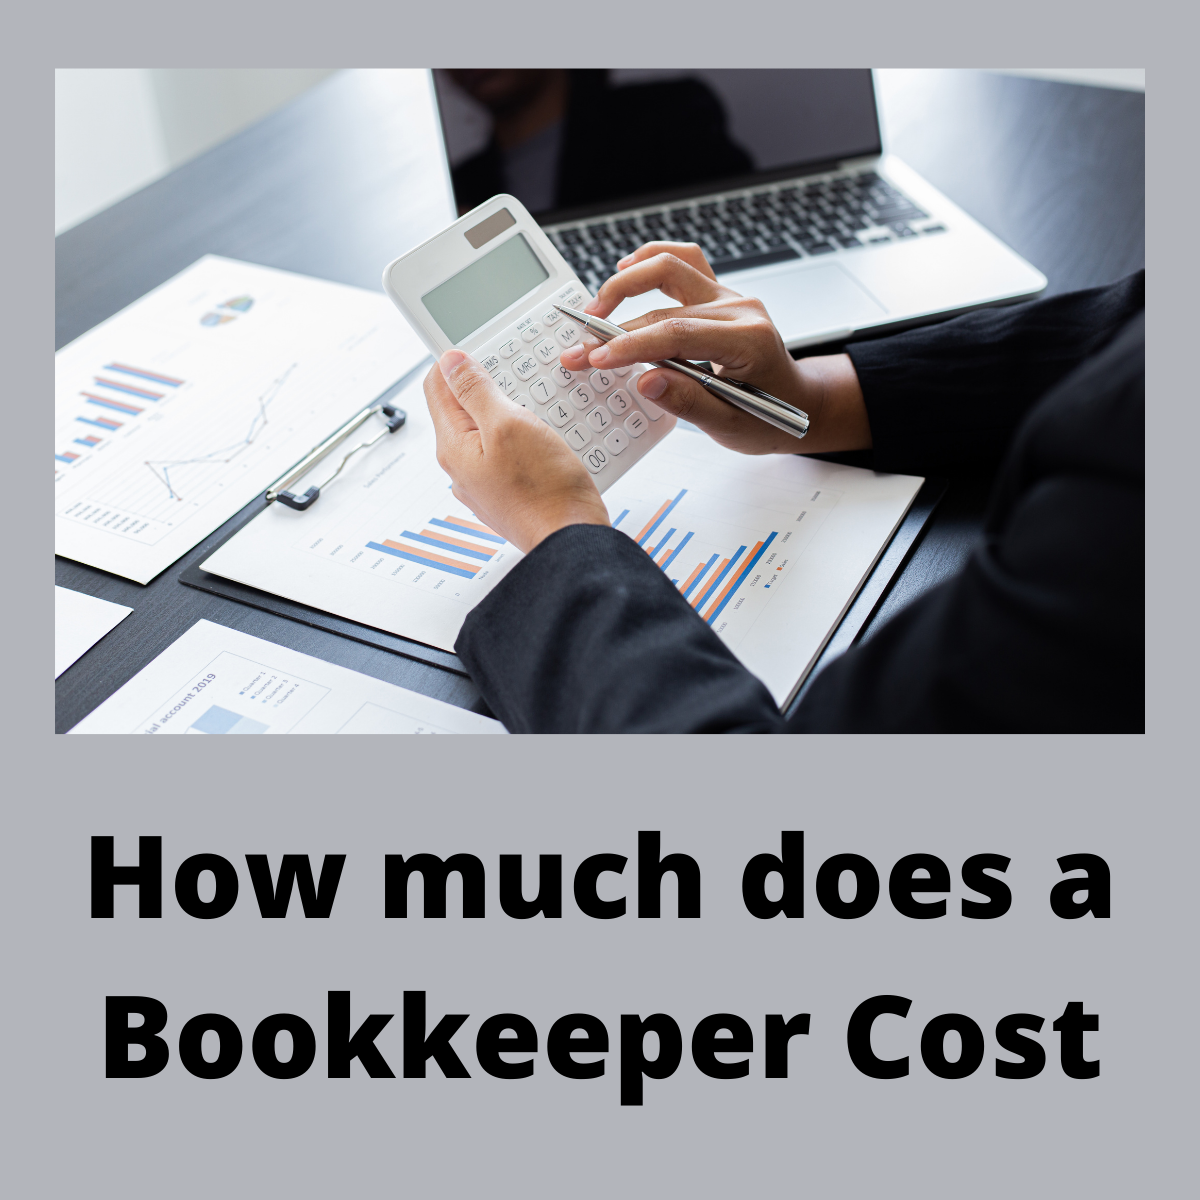 How much does a Bookkeeper Cost